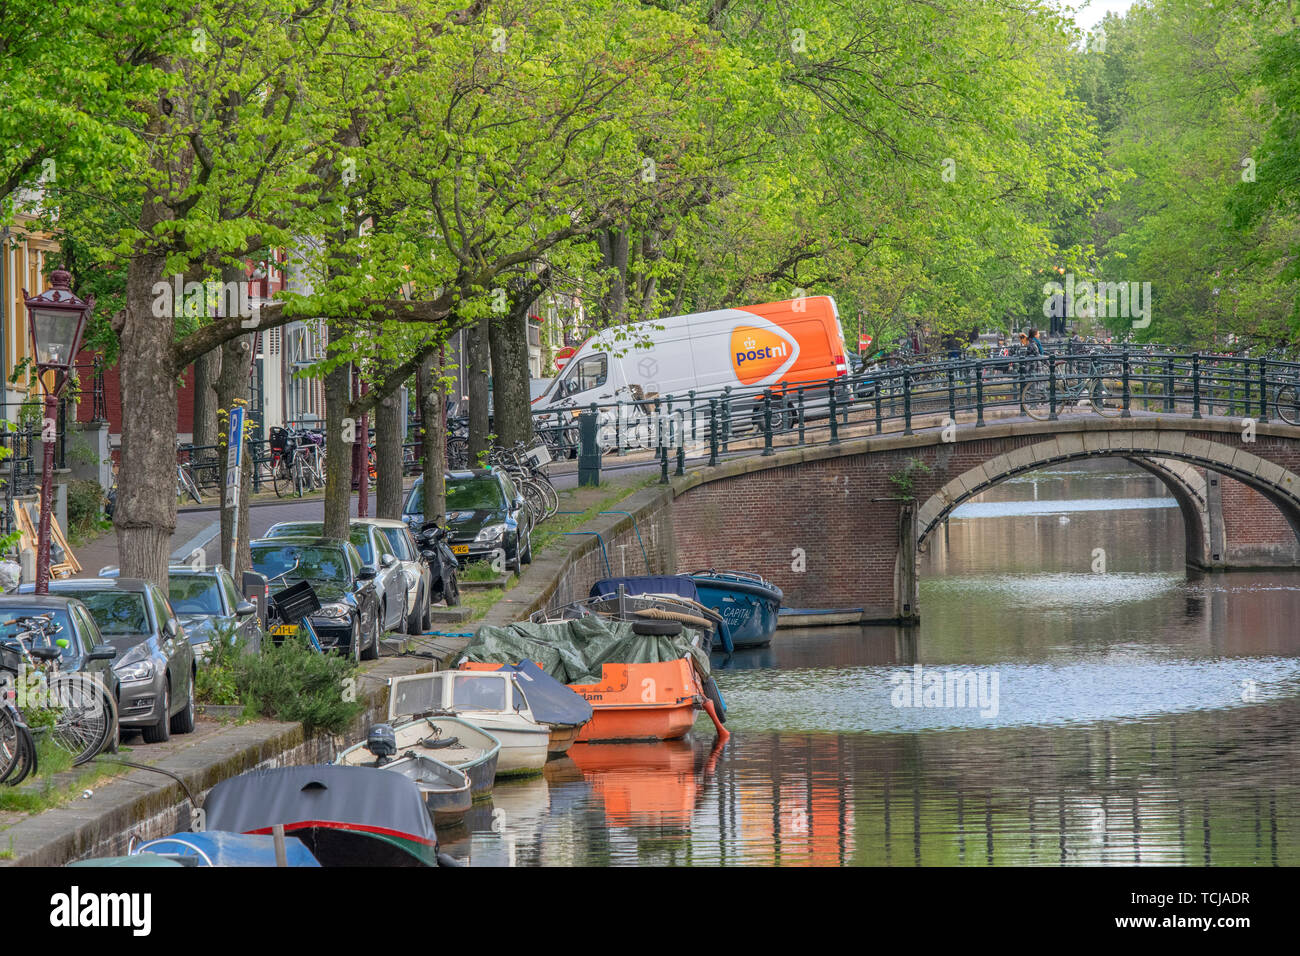 Post.nl Van On The Reguliersgracht At Amsterdam The Netherlands 2019 Stock Photo